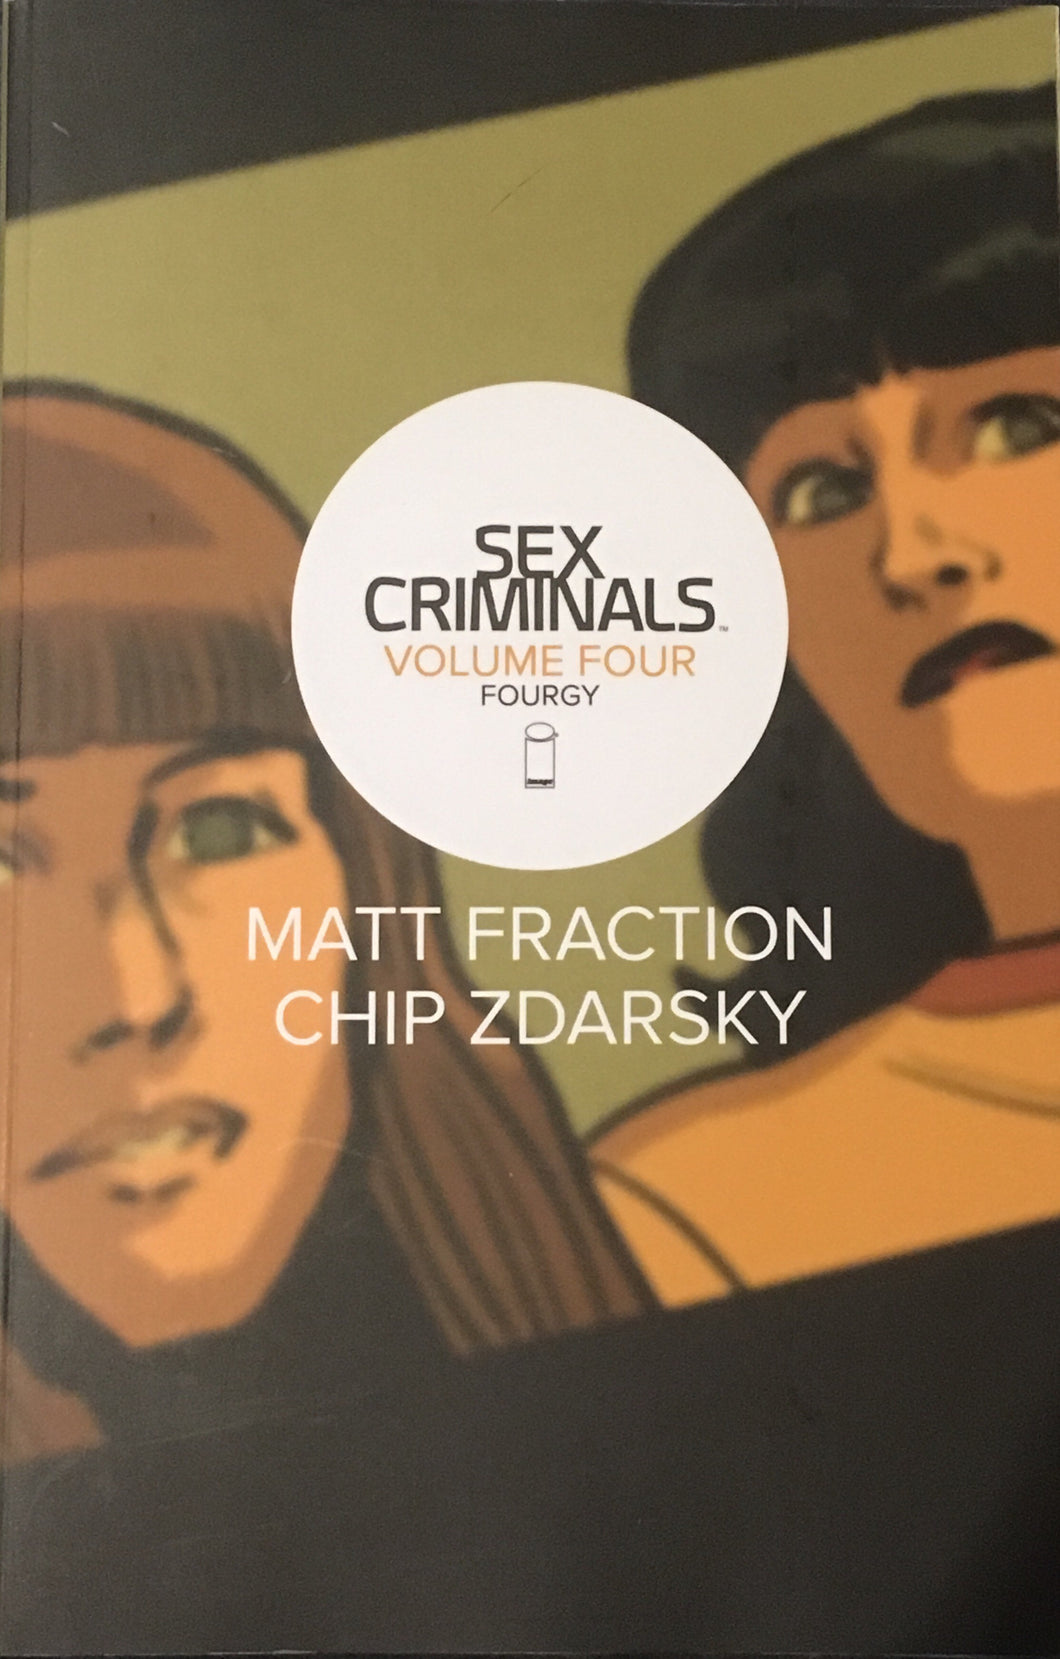 Sex Criminals Volume Four: Fourgy TPB Comic (Image Comics)